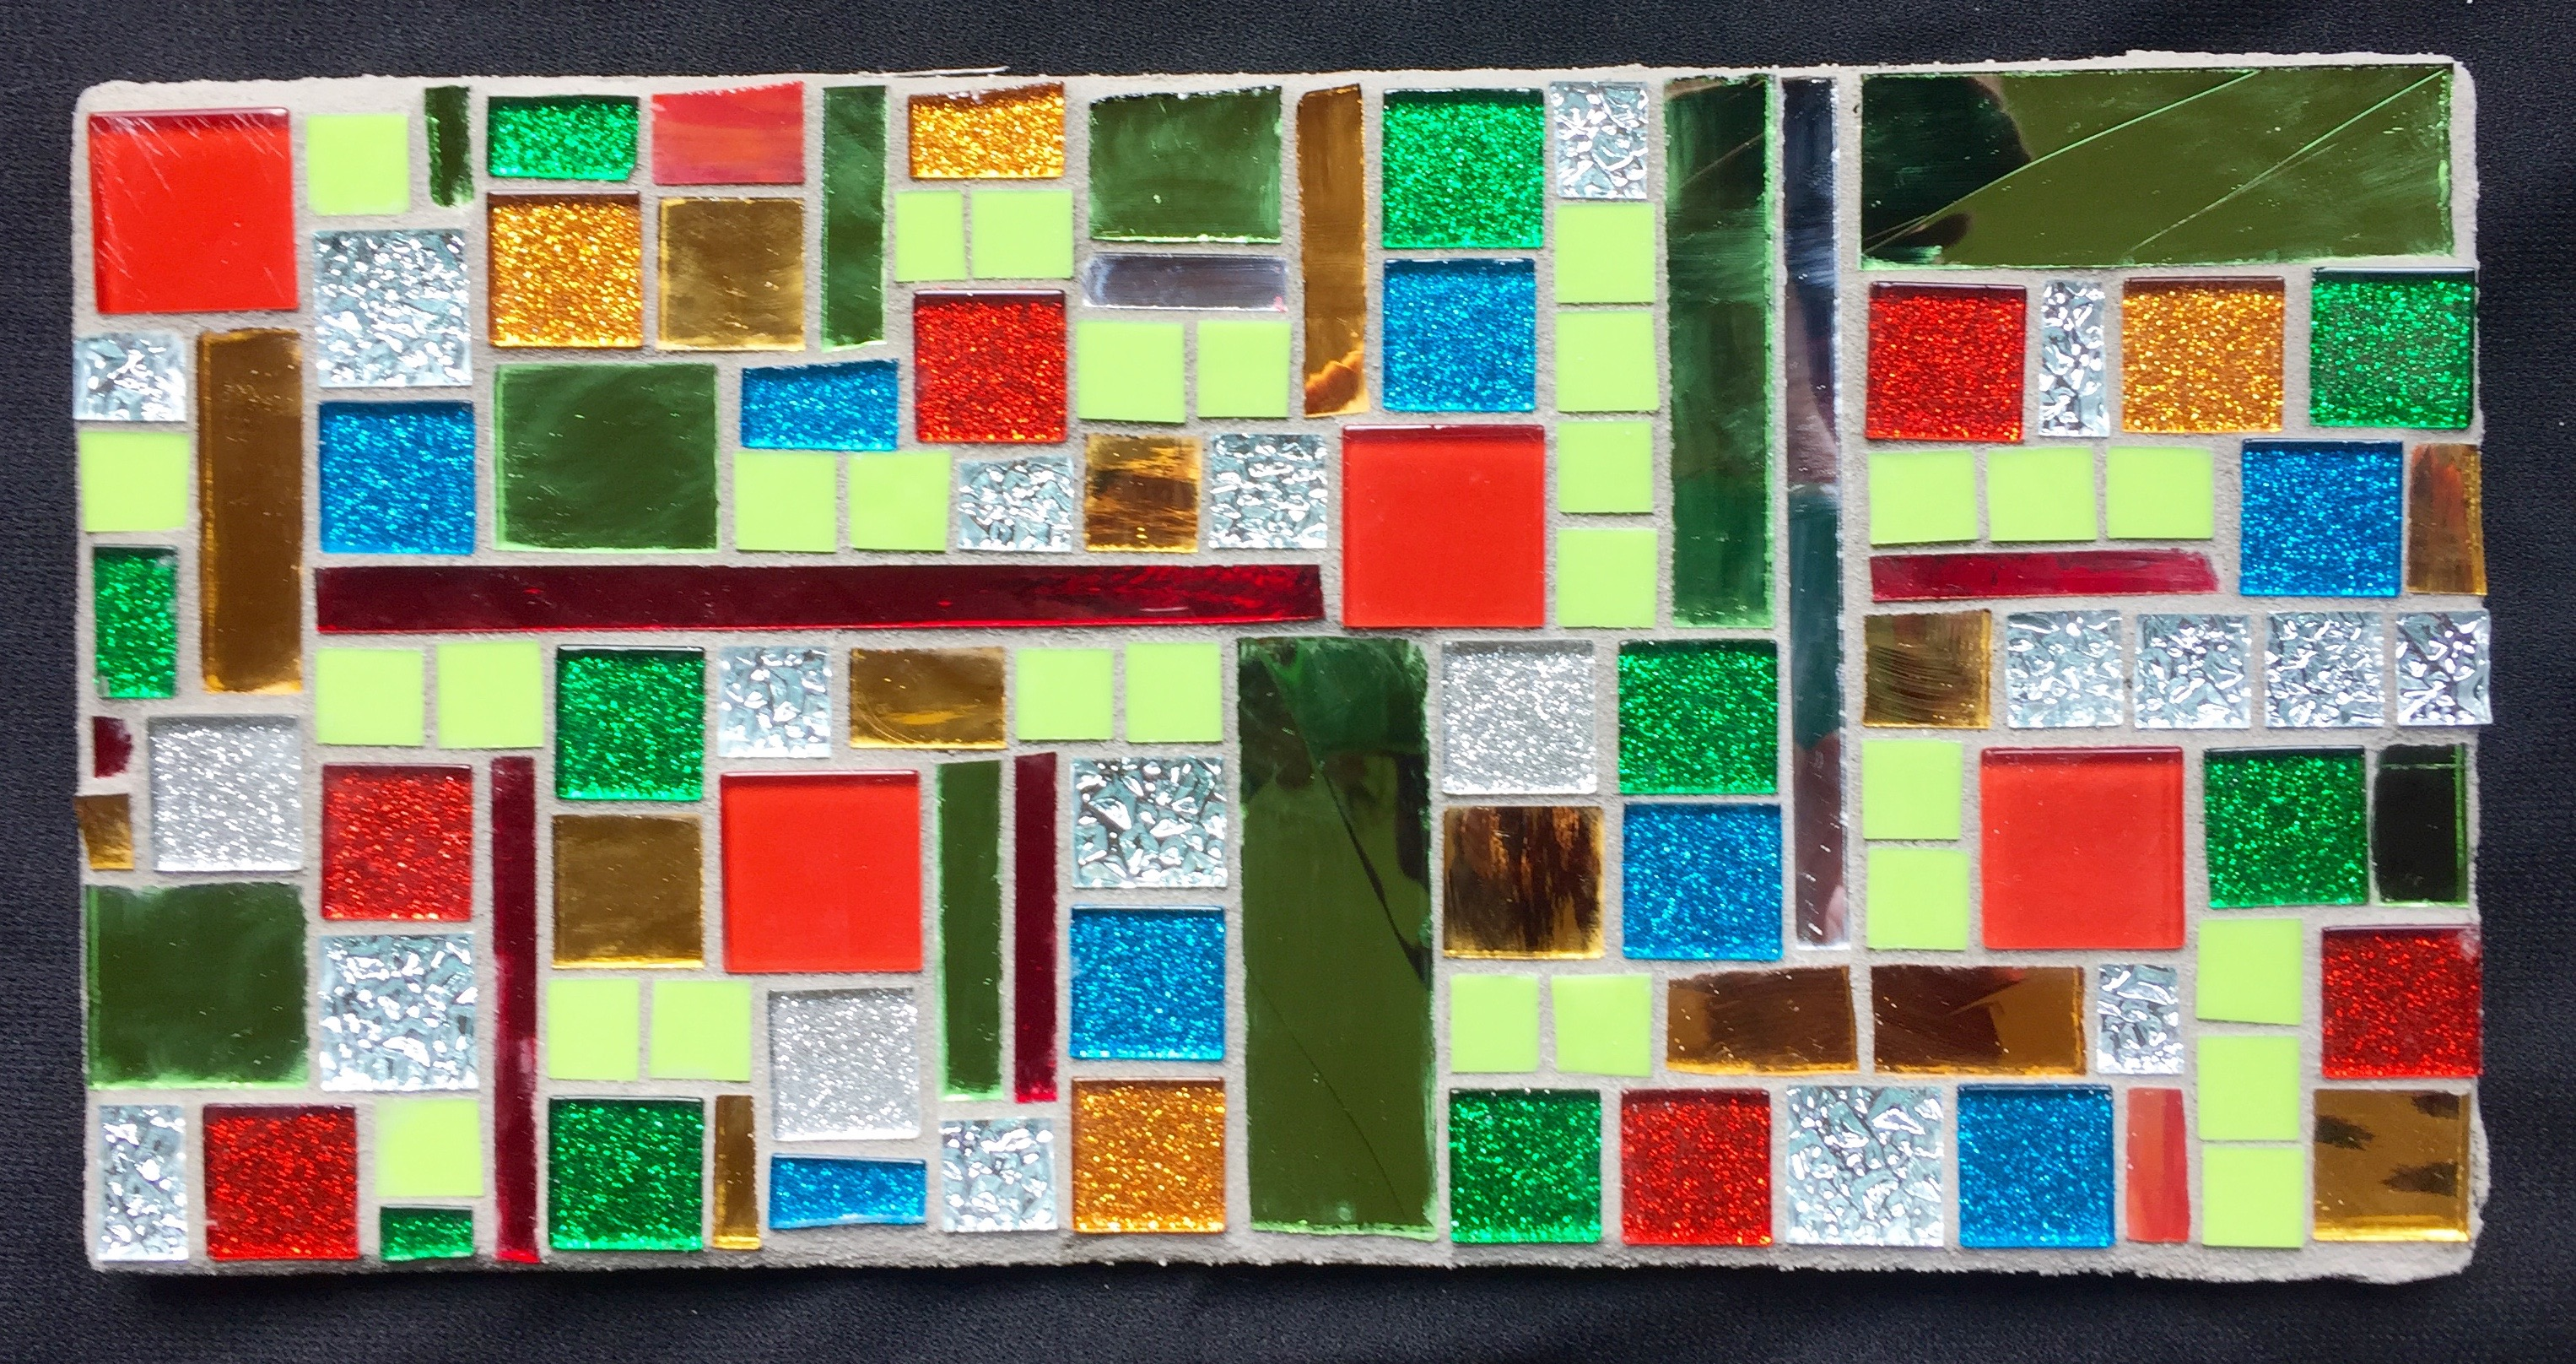 X-mas color block mosaic plaque